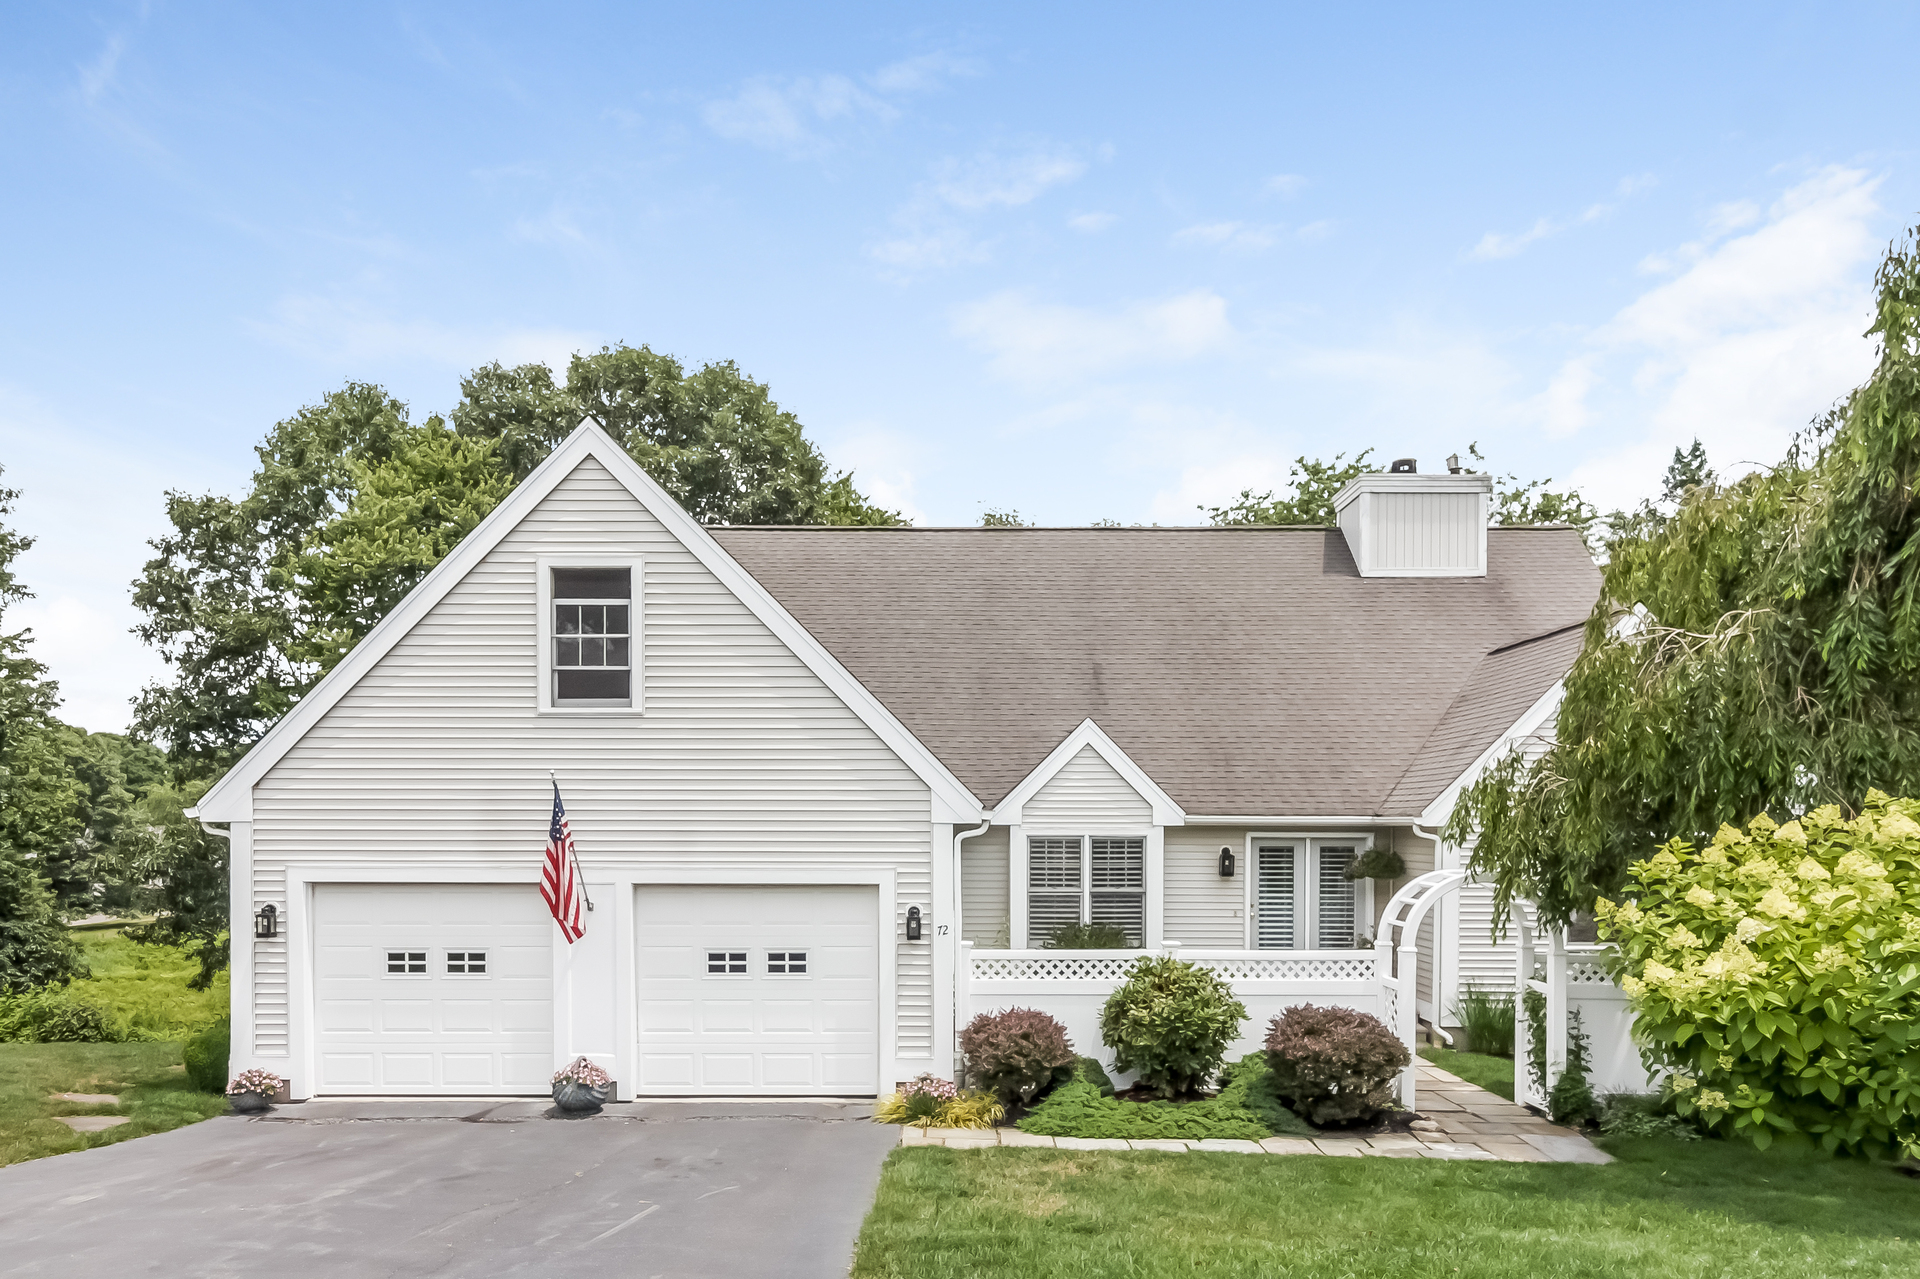 Condominium for Sale at 72 Sconset Ln 72 Sconset Ln 72 Guilford, Connecticut, 06437 United States